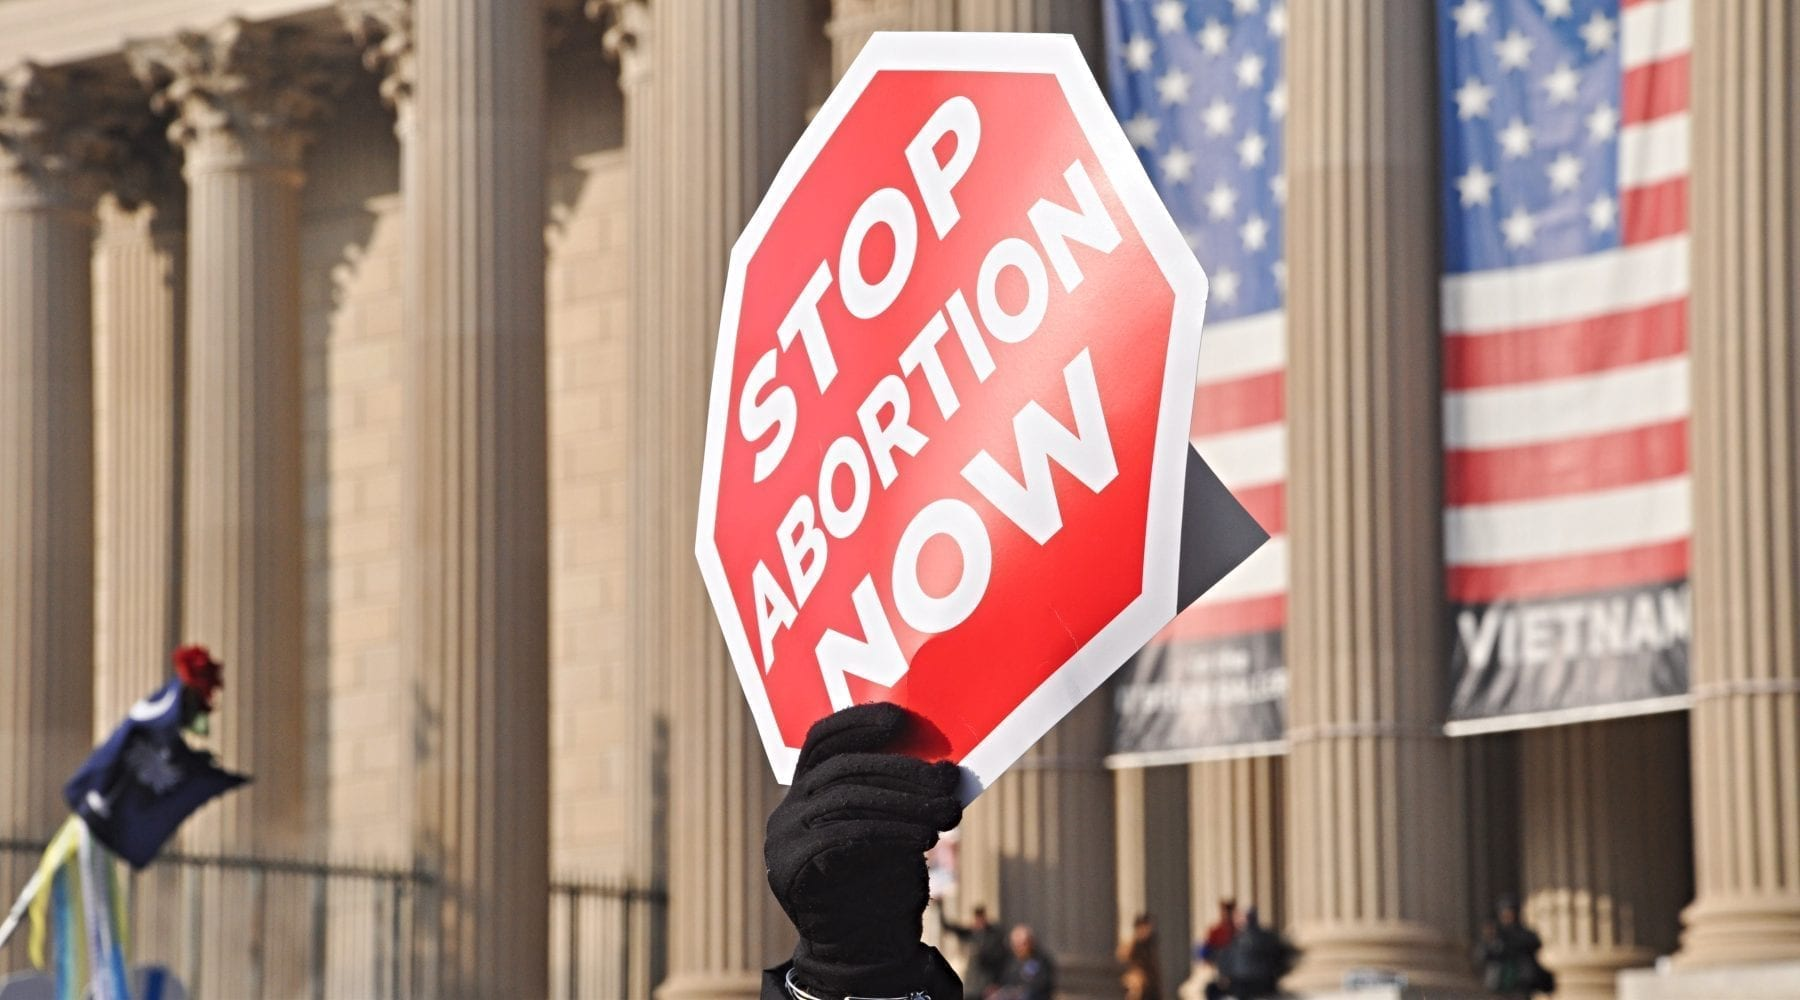 Republicans, Protestants, 55-Plus Want Stricter Abortion Laws